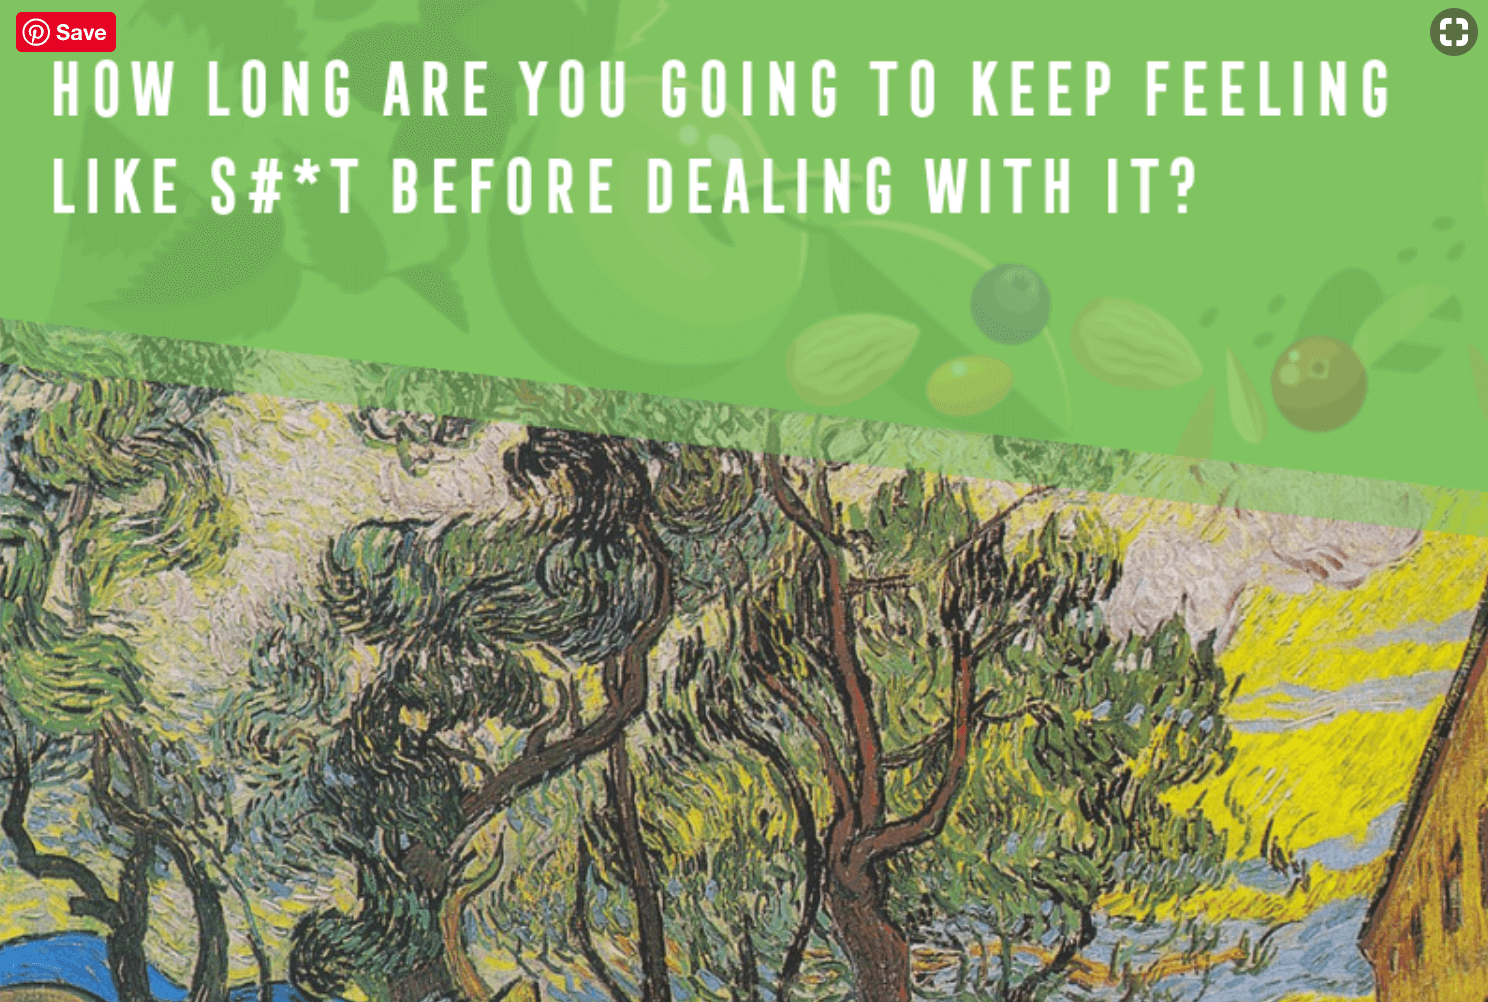 How long are you going to keep feeling like s#*t before dealing with it?